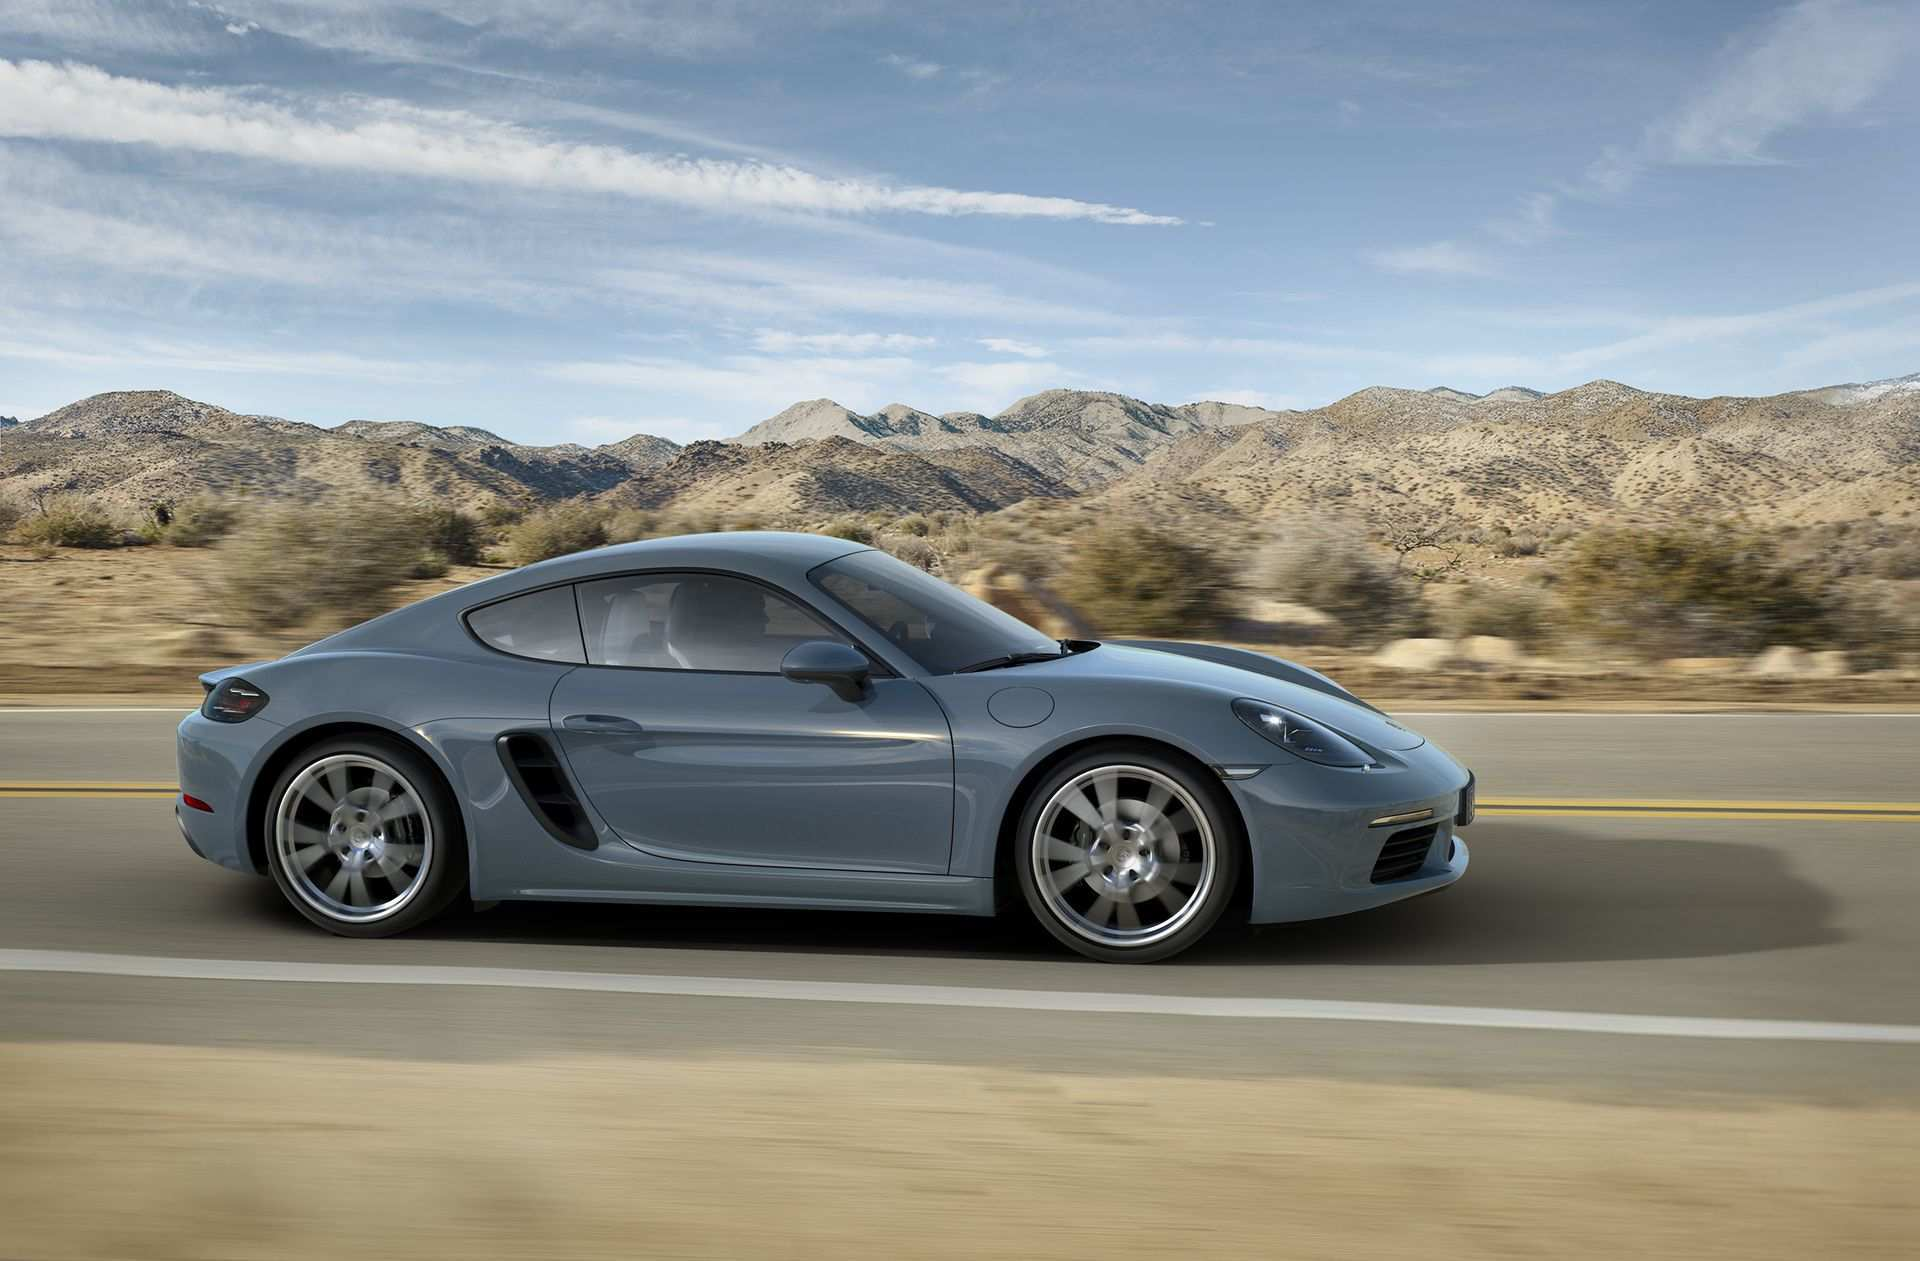 32 Best 2019 Porsche Cayman Interior